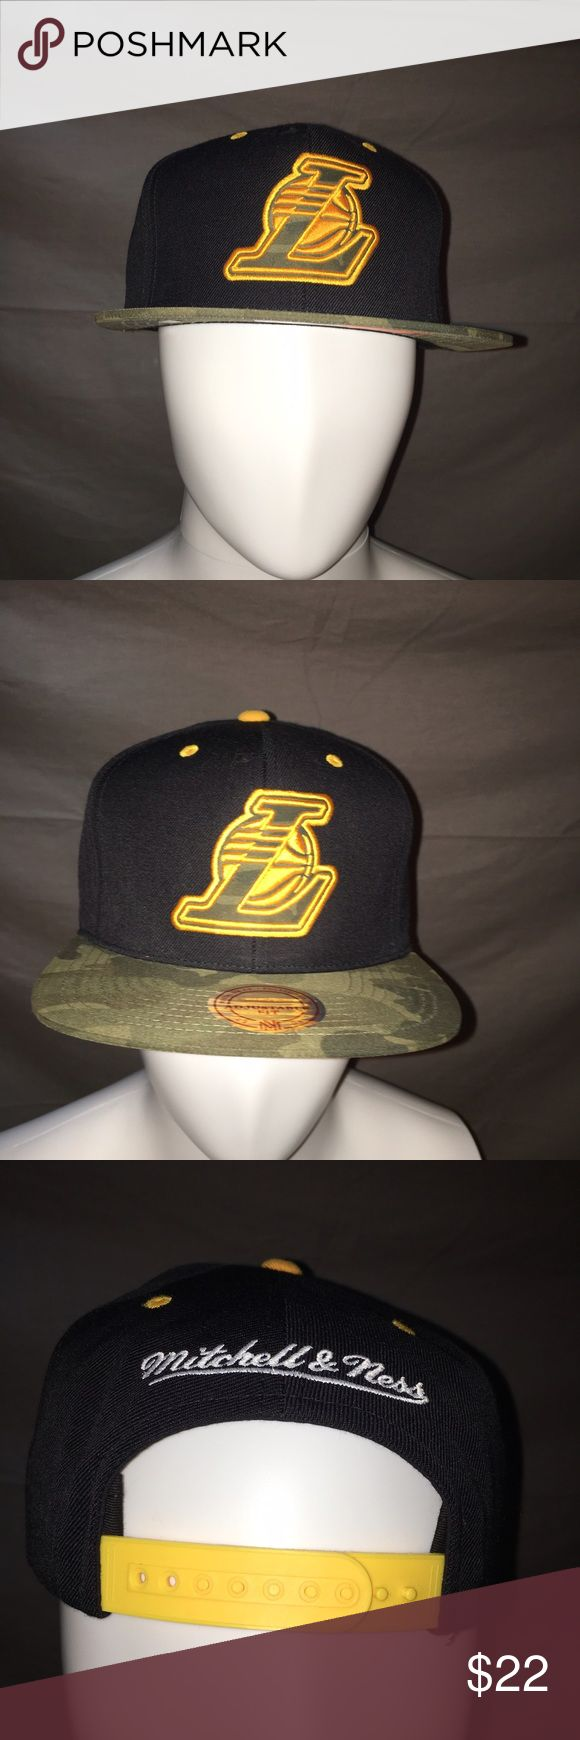 Mitchell and Ness Lakers SnapBack Hat. Brand new with tags Mitchell and Ness Los Angeles Lakers Hat. Mint condition. Camouflage brim, yellow snaps. Definitely different from all the rest. Great for any Lakers fan. Mitchell & Ness Accessories Hats